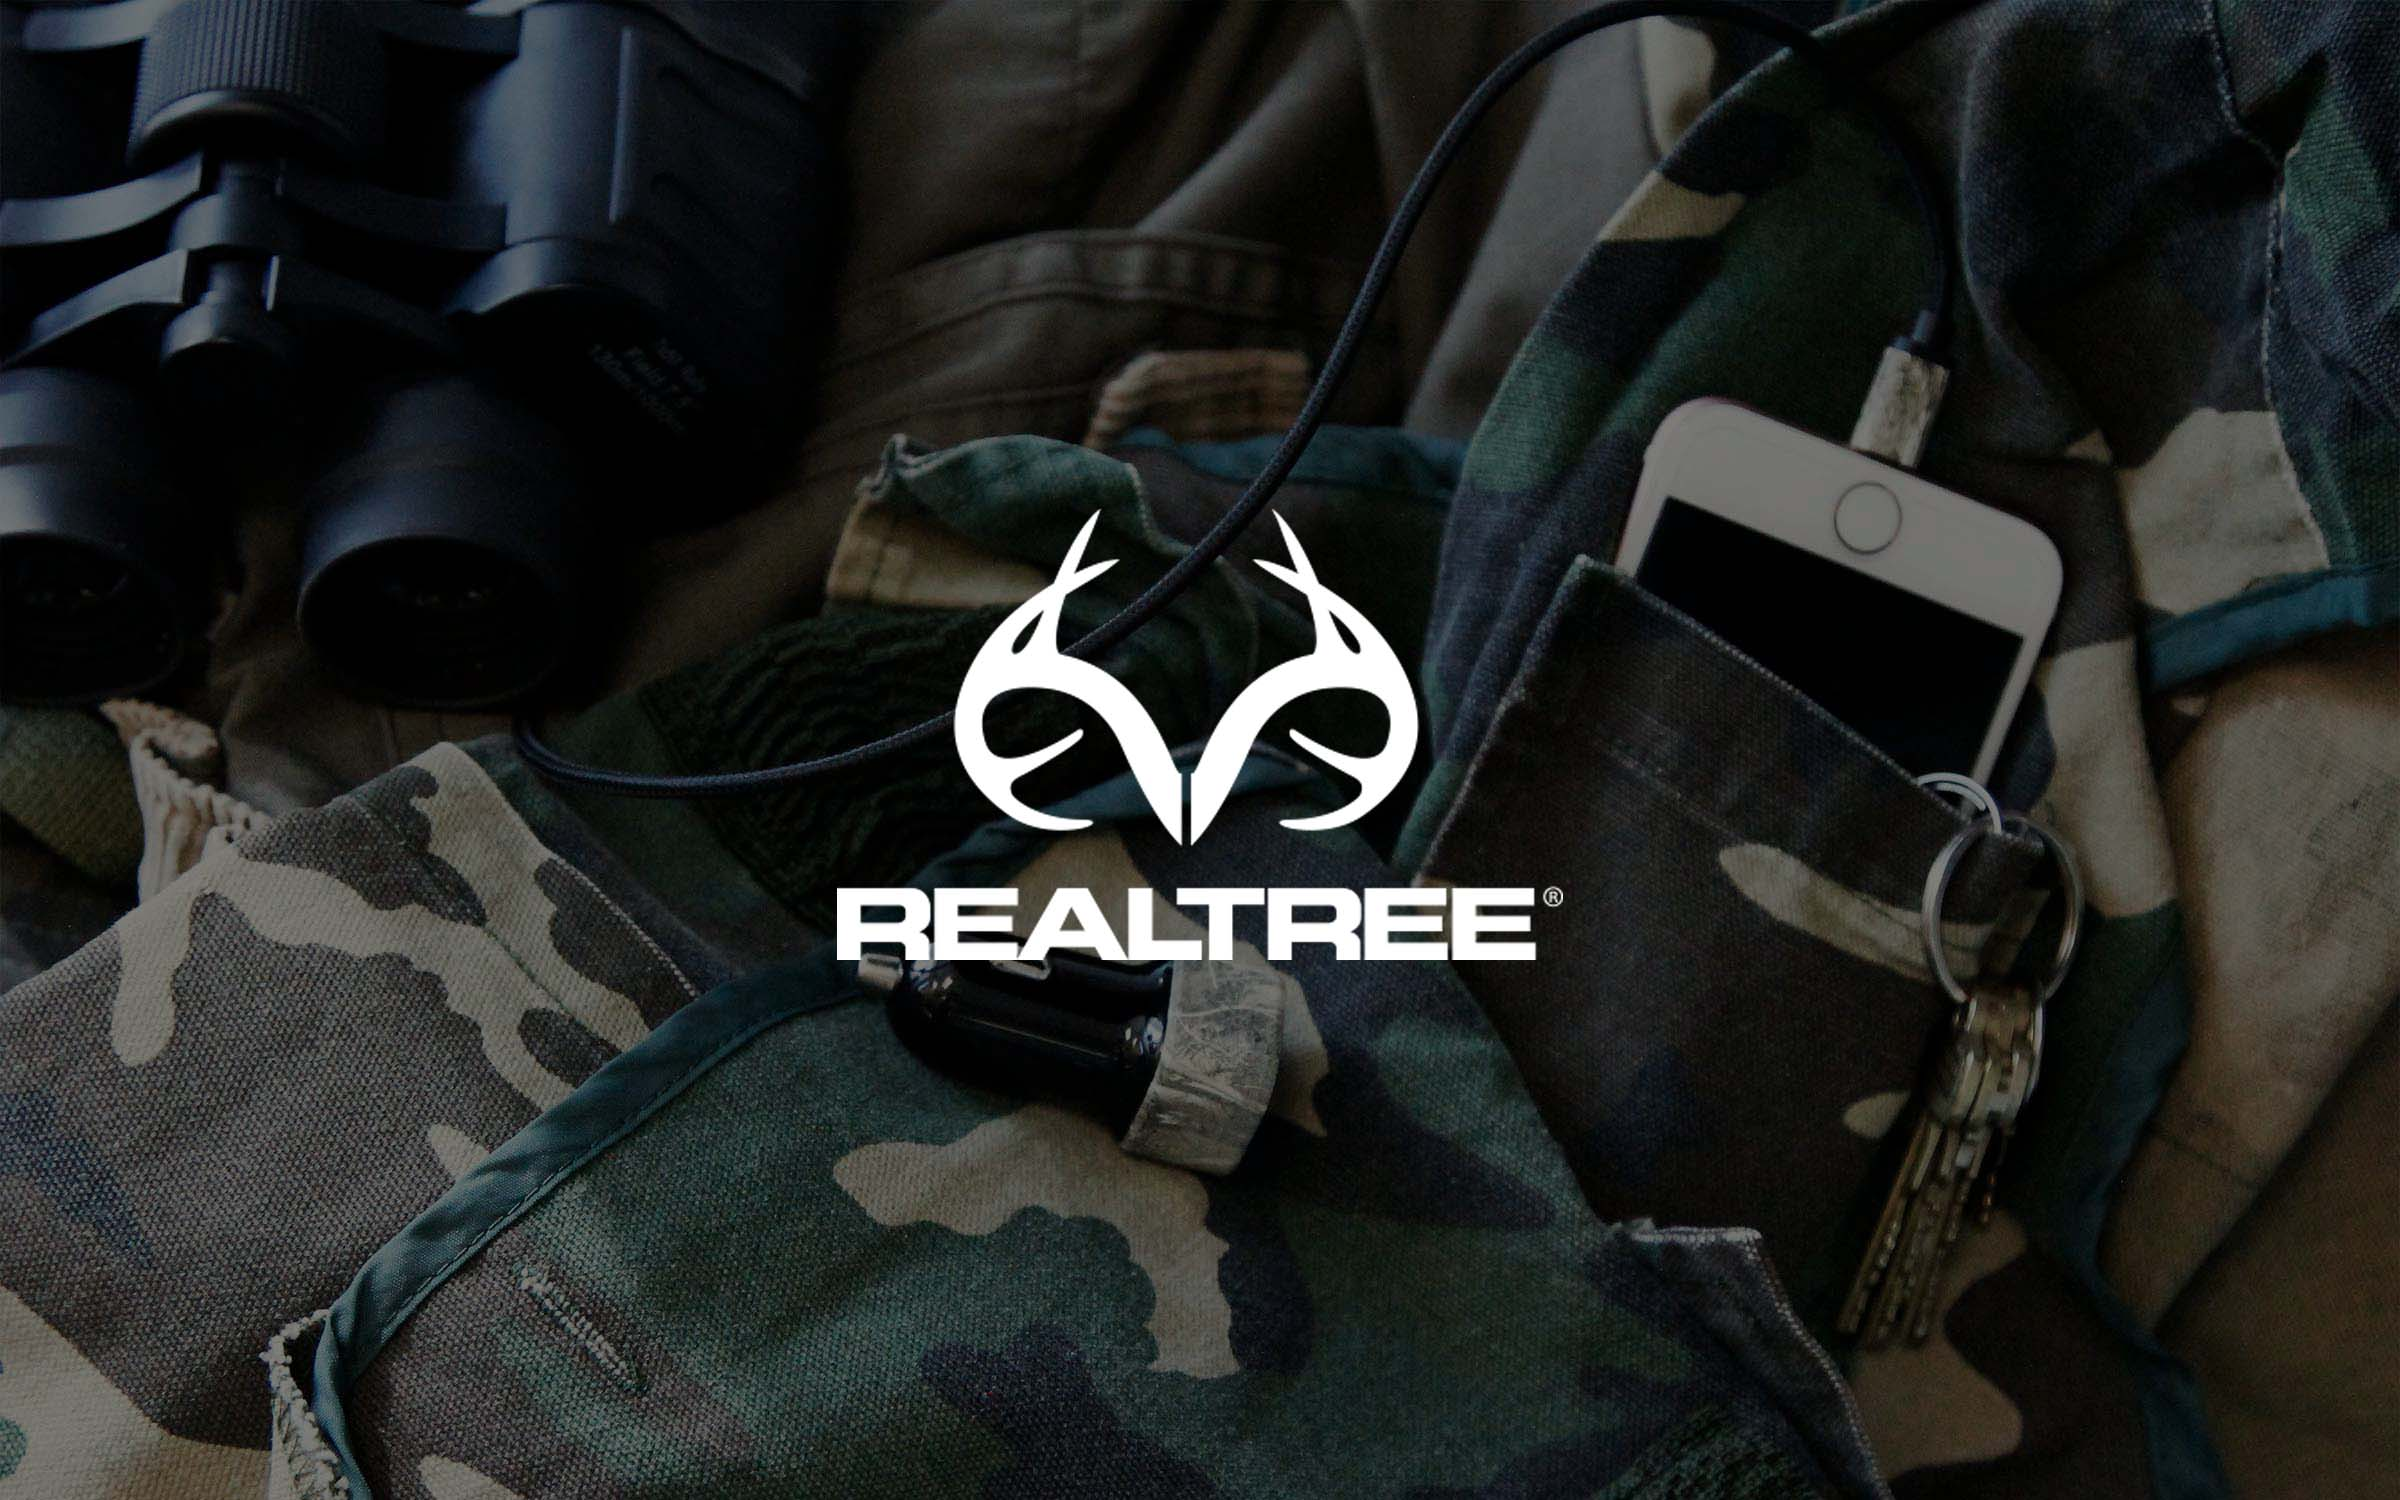 Realtree_iPhone_Cable_Lightning_TypeC_MicroUSB_Qi.jpg